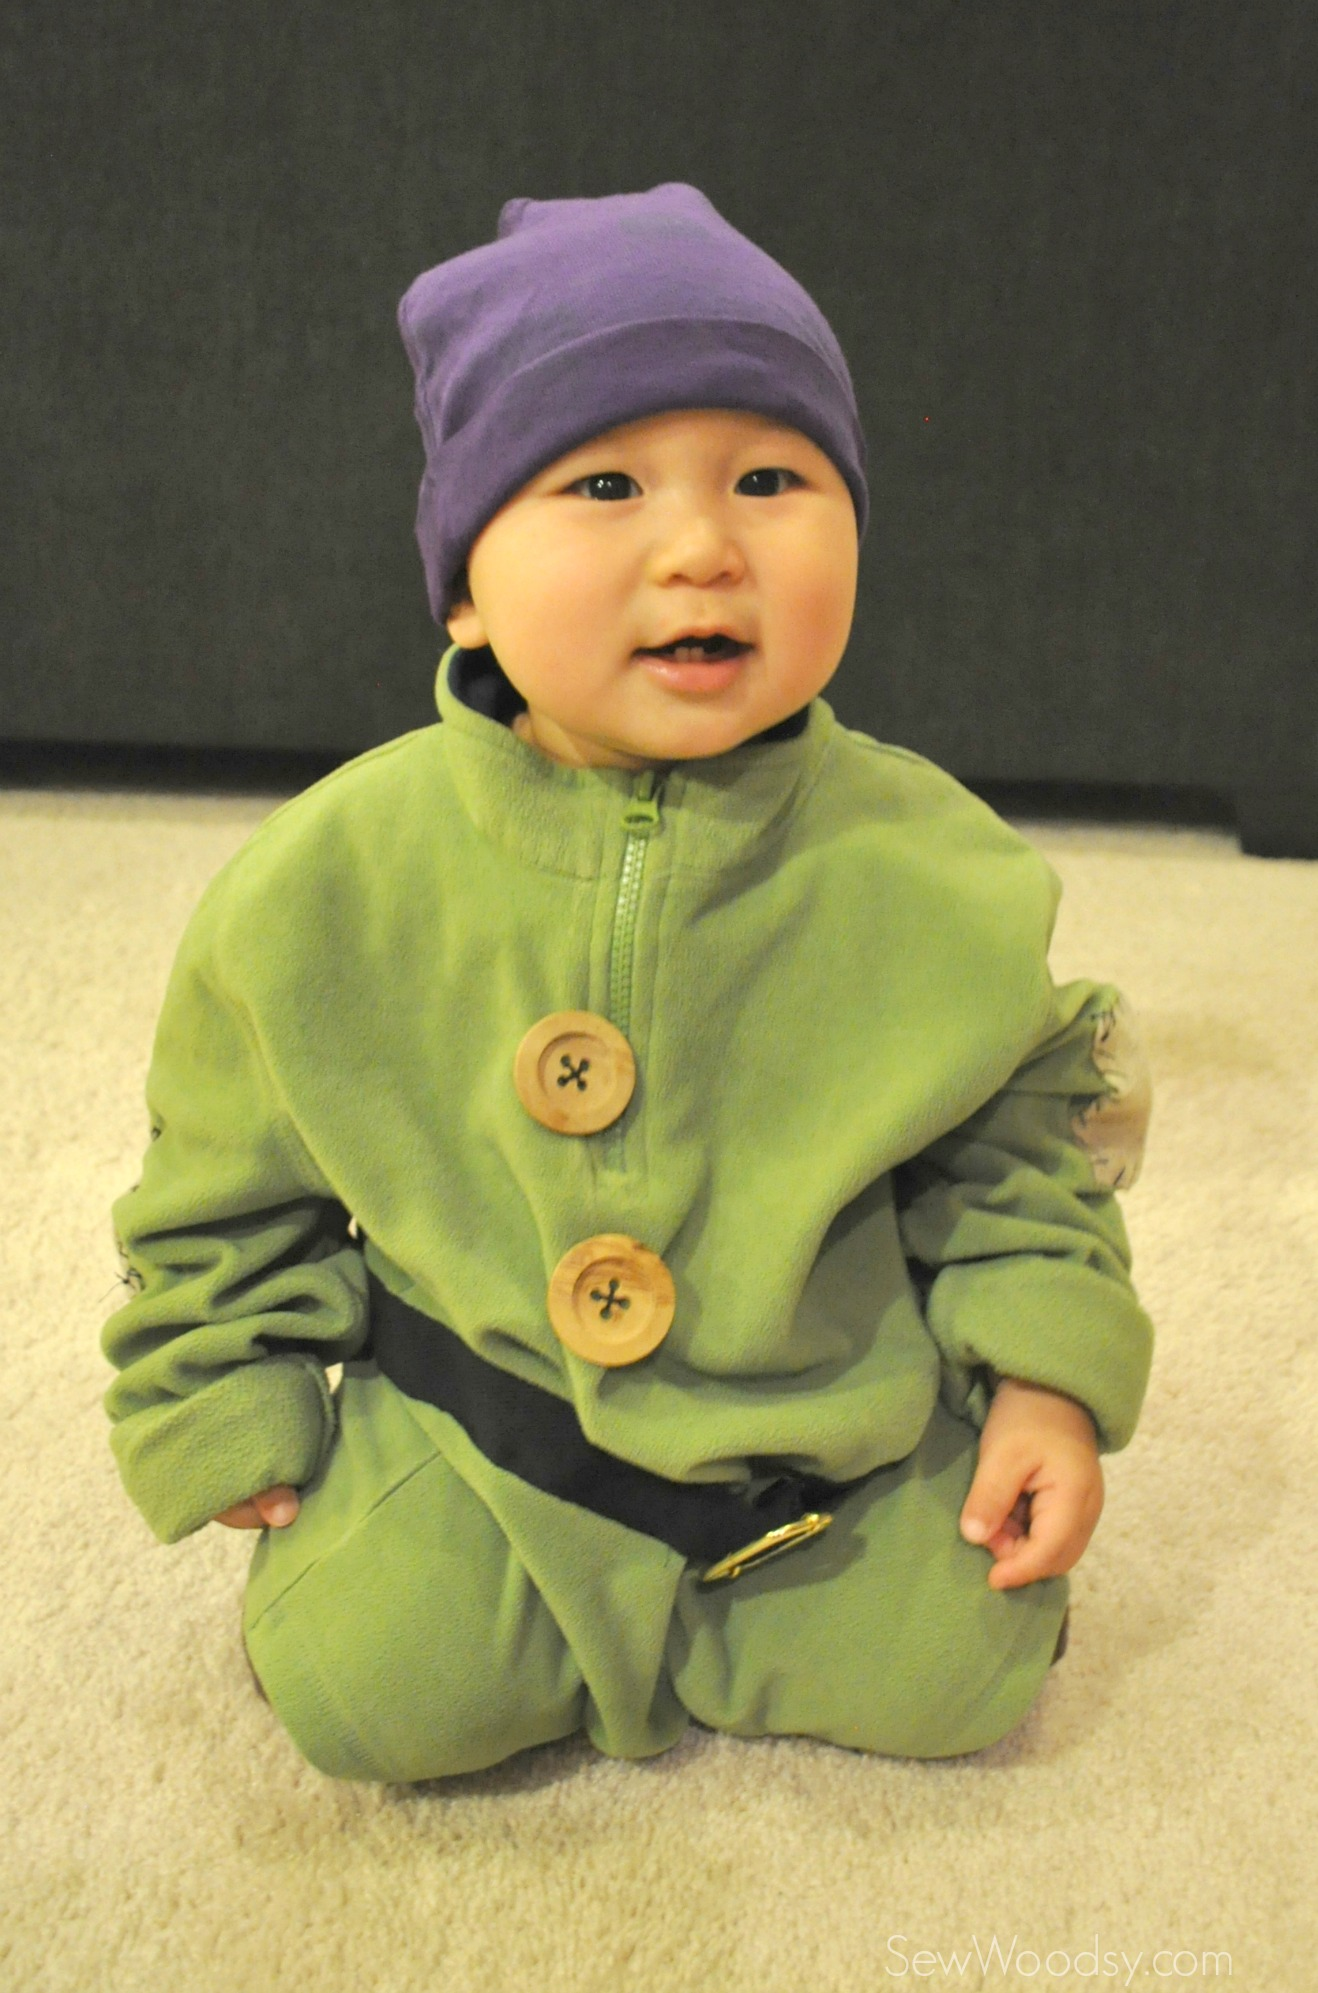 Easy DIY Costume Dopey The Dwarf